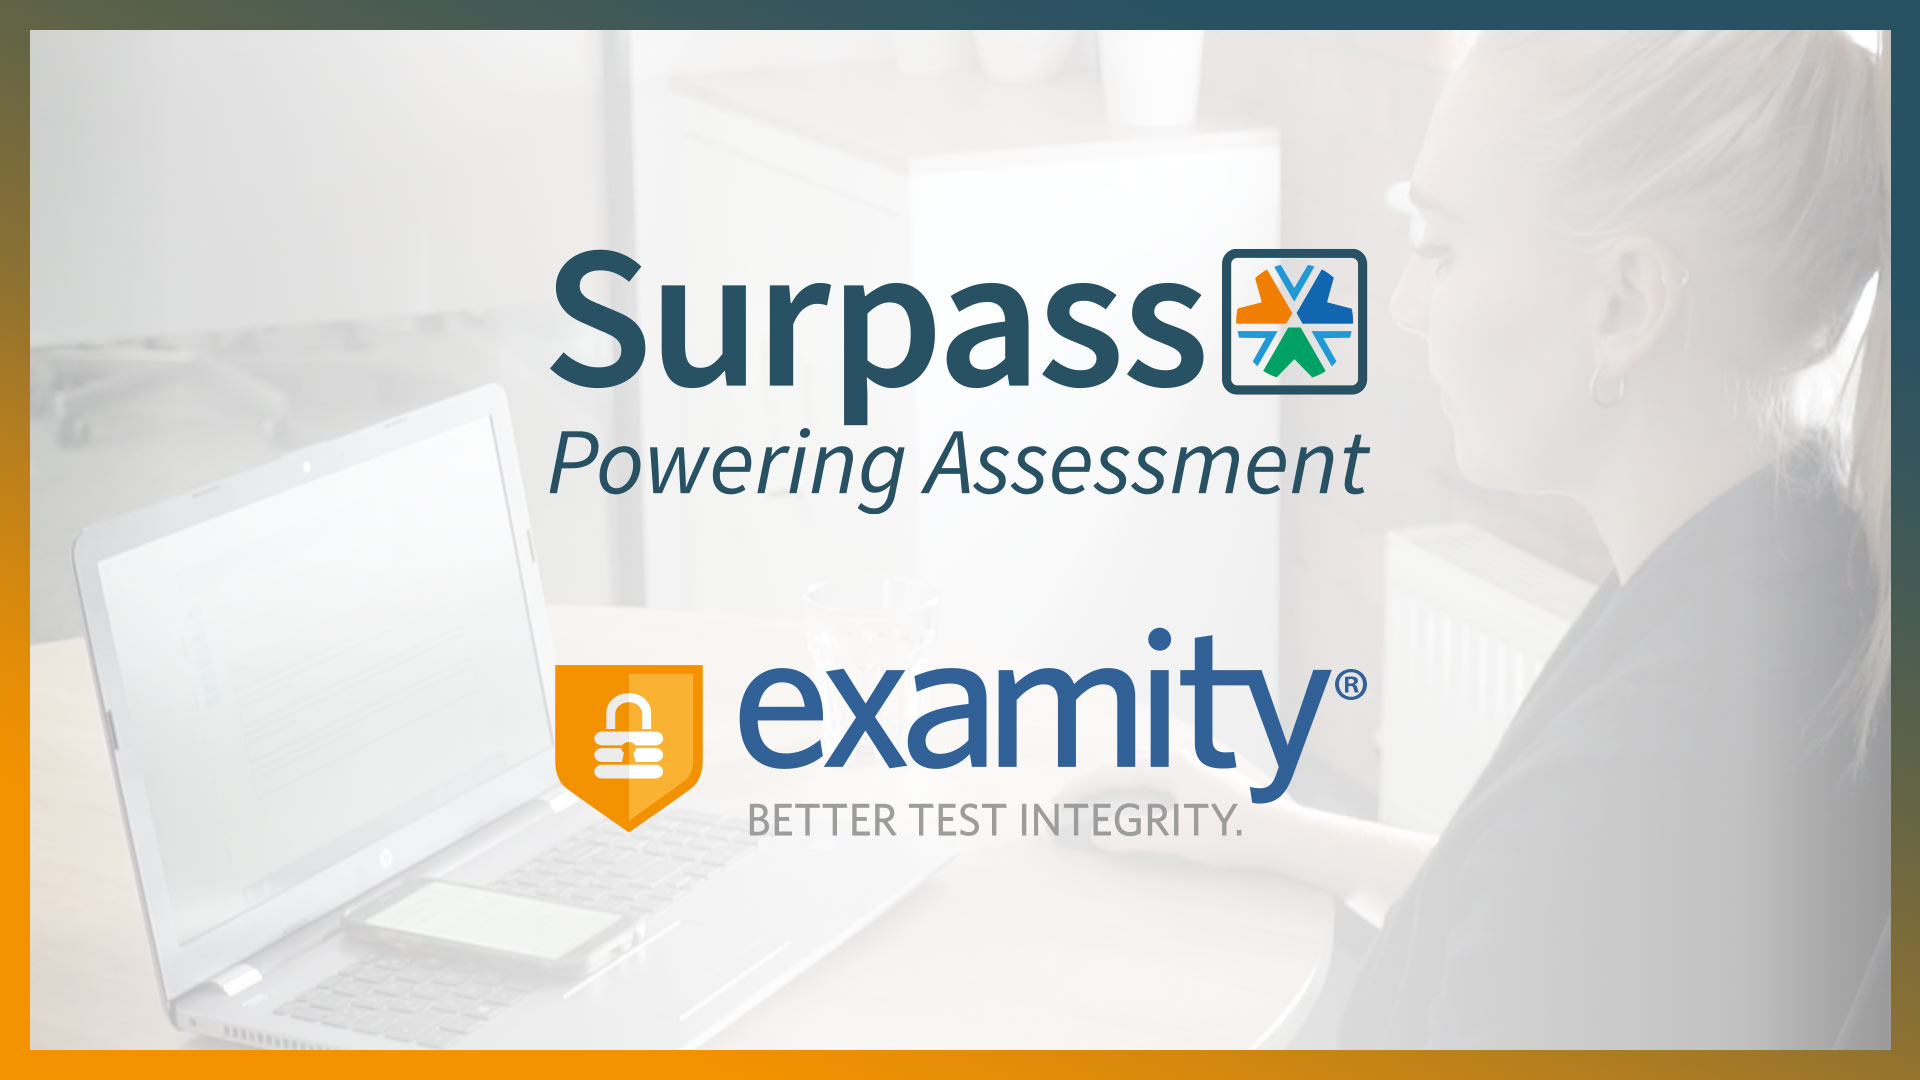 Surpass and Examity